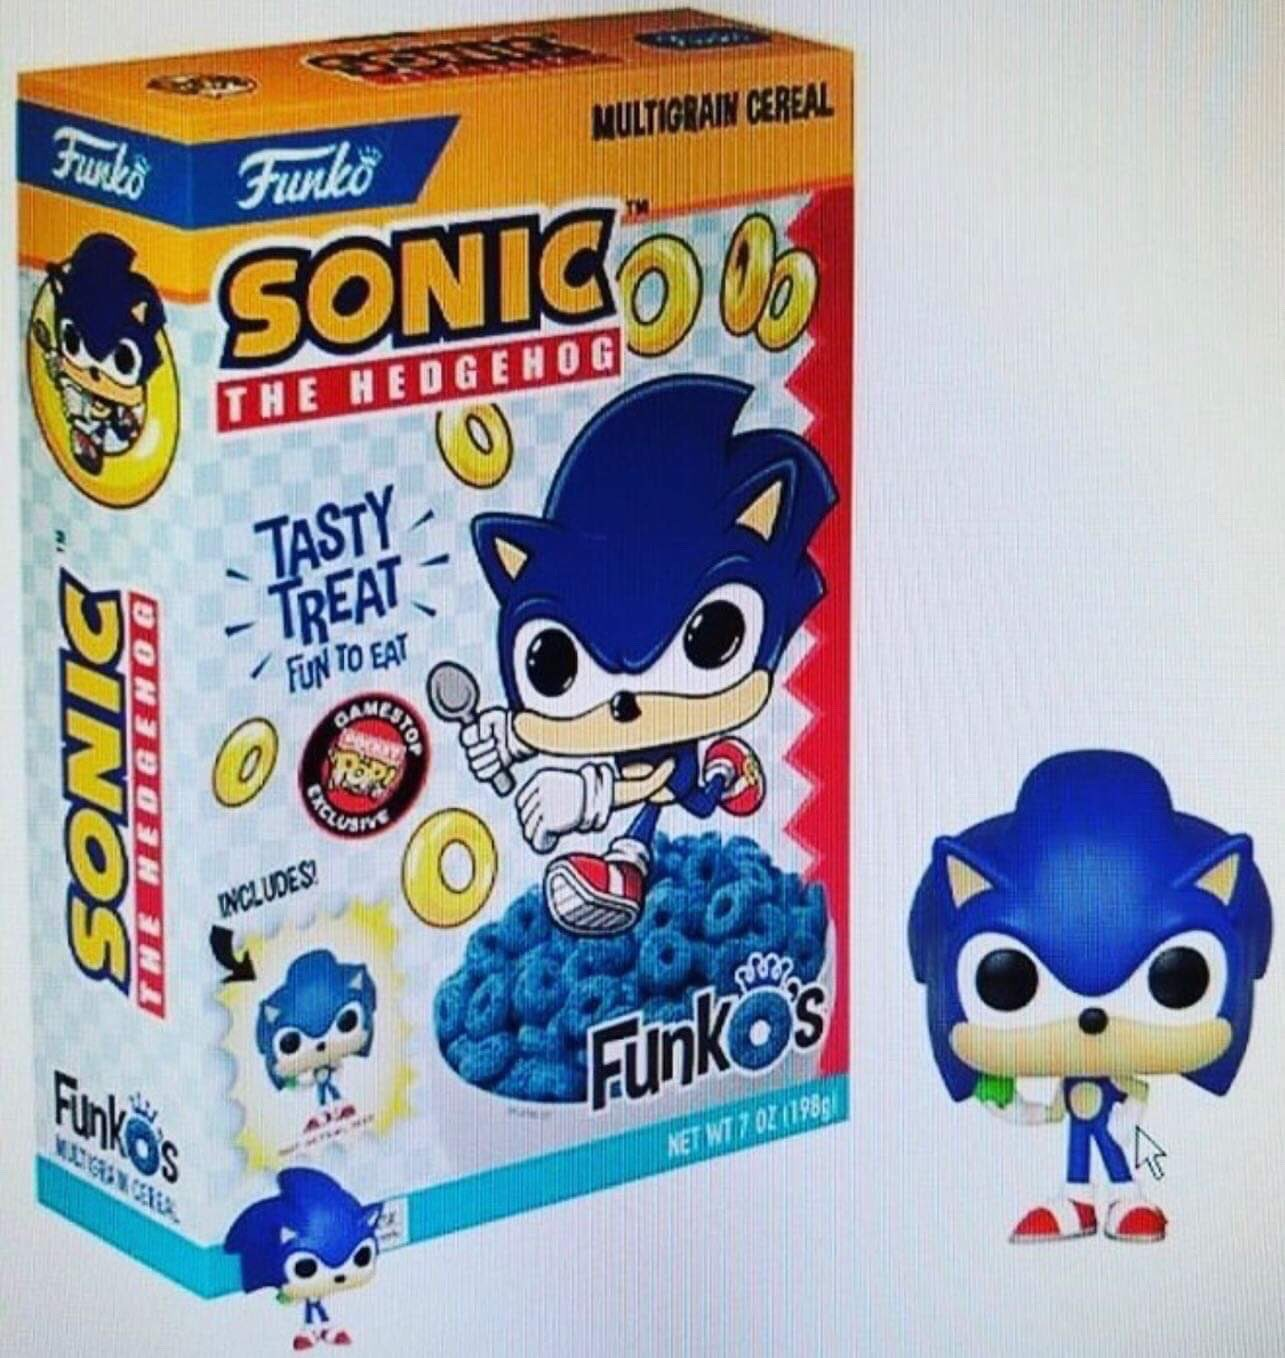 Funko Sonic The Hedgehog Breakfast Cereal Coming To